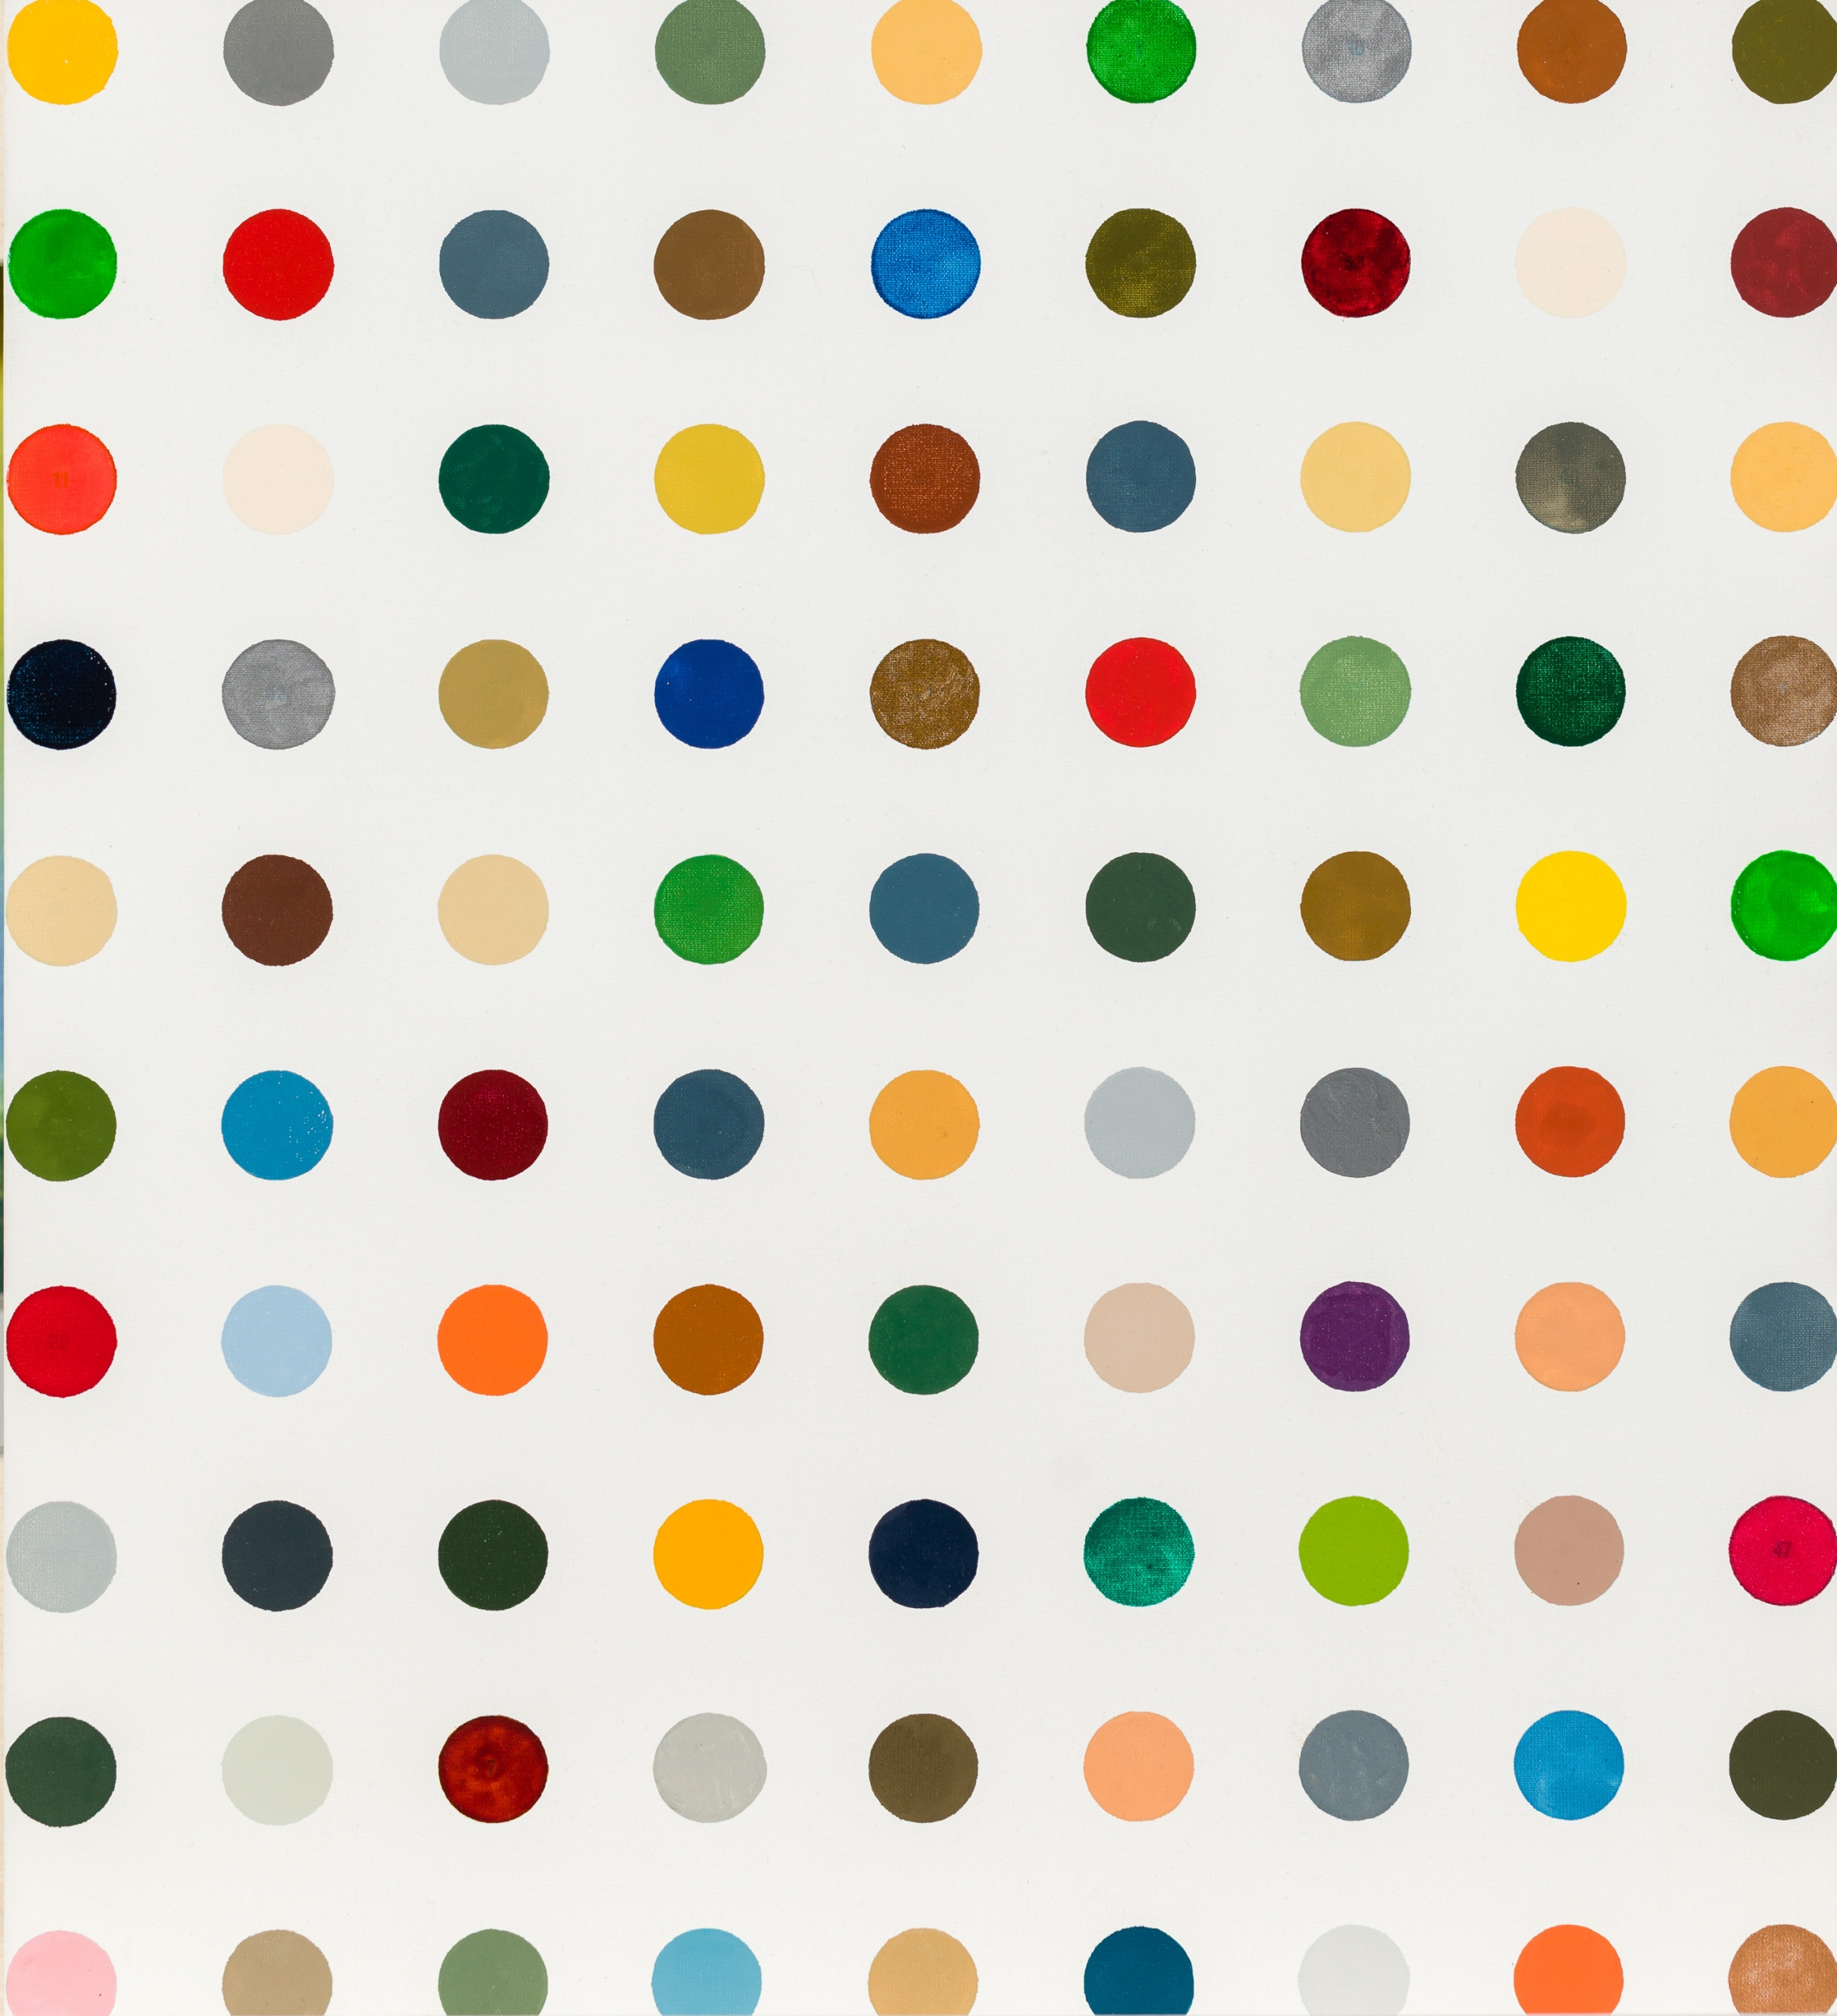 Damien Hirst, Painting-By-Numbers